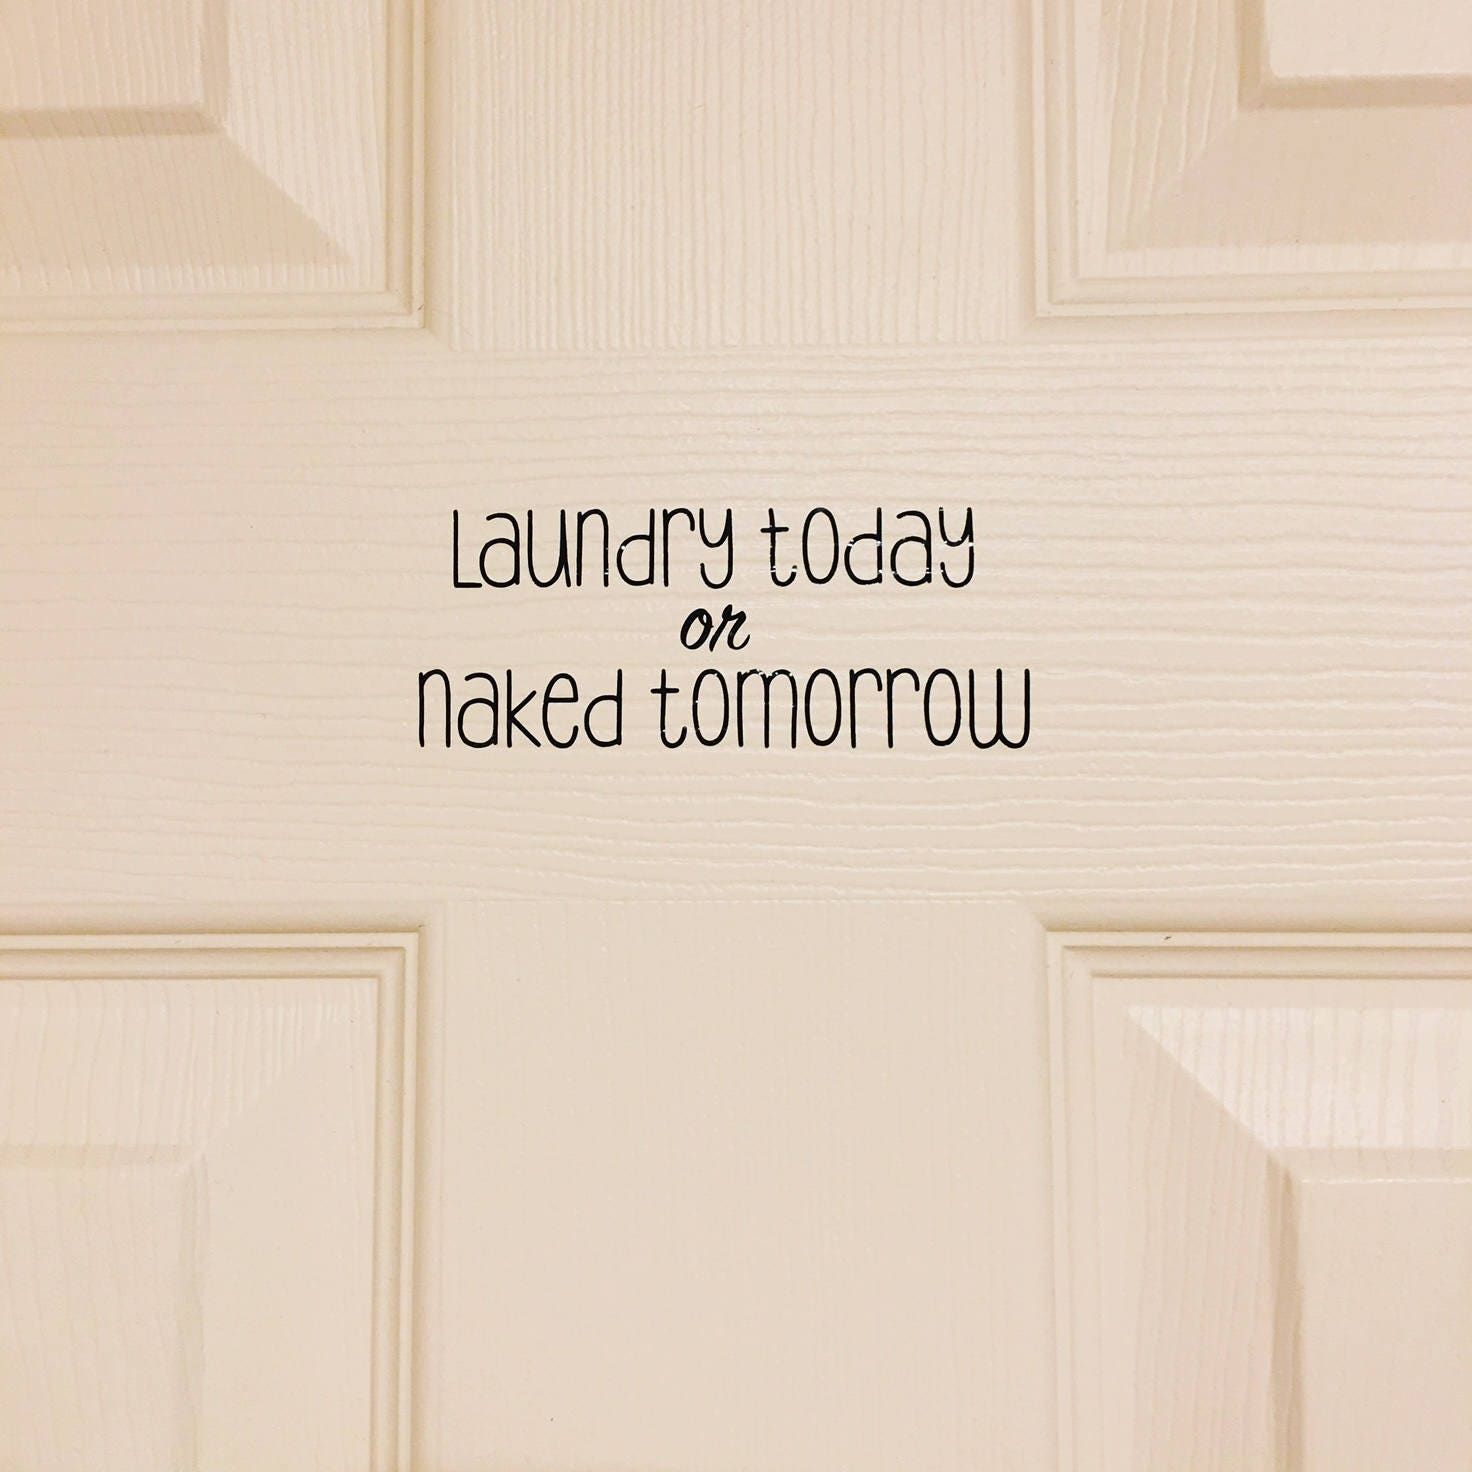 Just For Today Quotes Laundry Today Or Naked Tomorrow Vinyl Saying Quote Vinyl